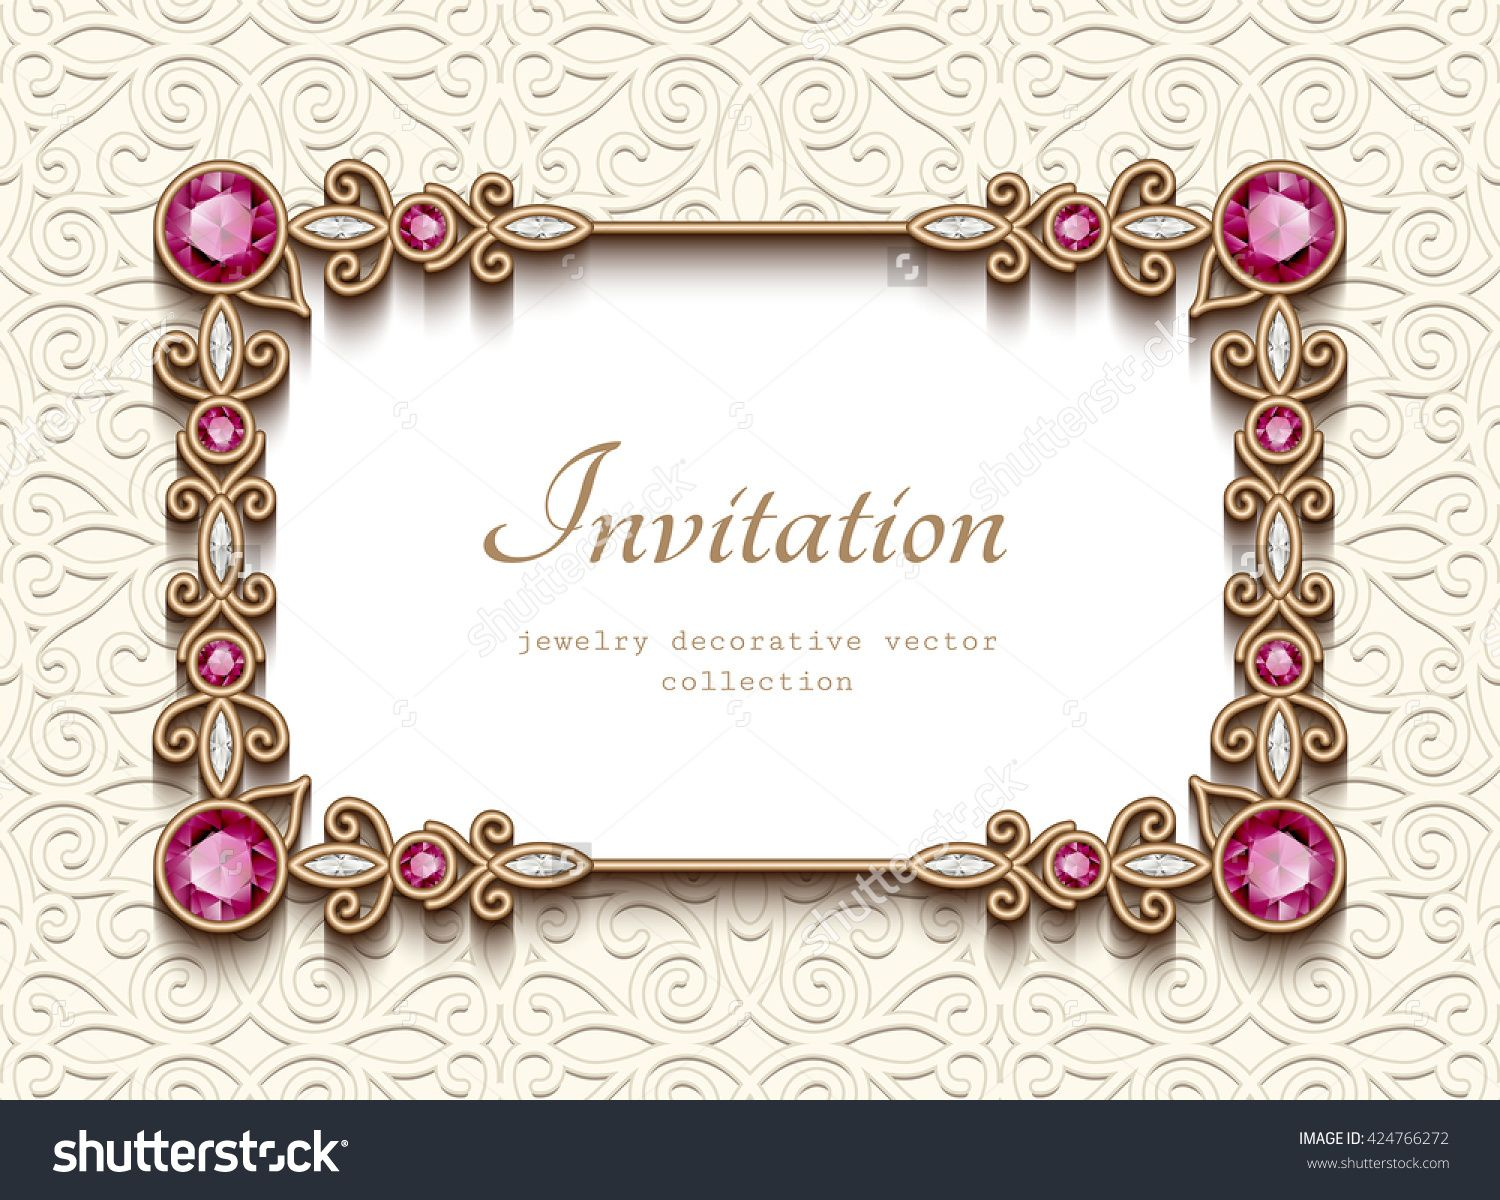 Vintage card with diamond jewelry decoration gold rectangle frame vintage card with diamond jewelry decoration gold rectangle frame elegant wedding invitation or announcement template vector illustration buy this stopboris Images